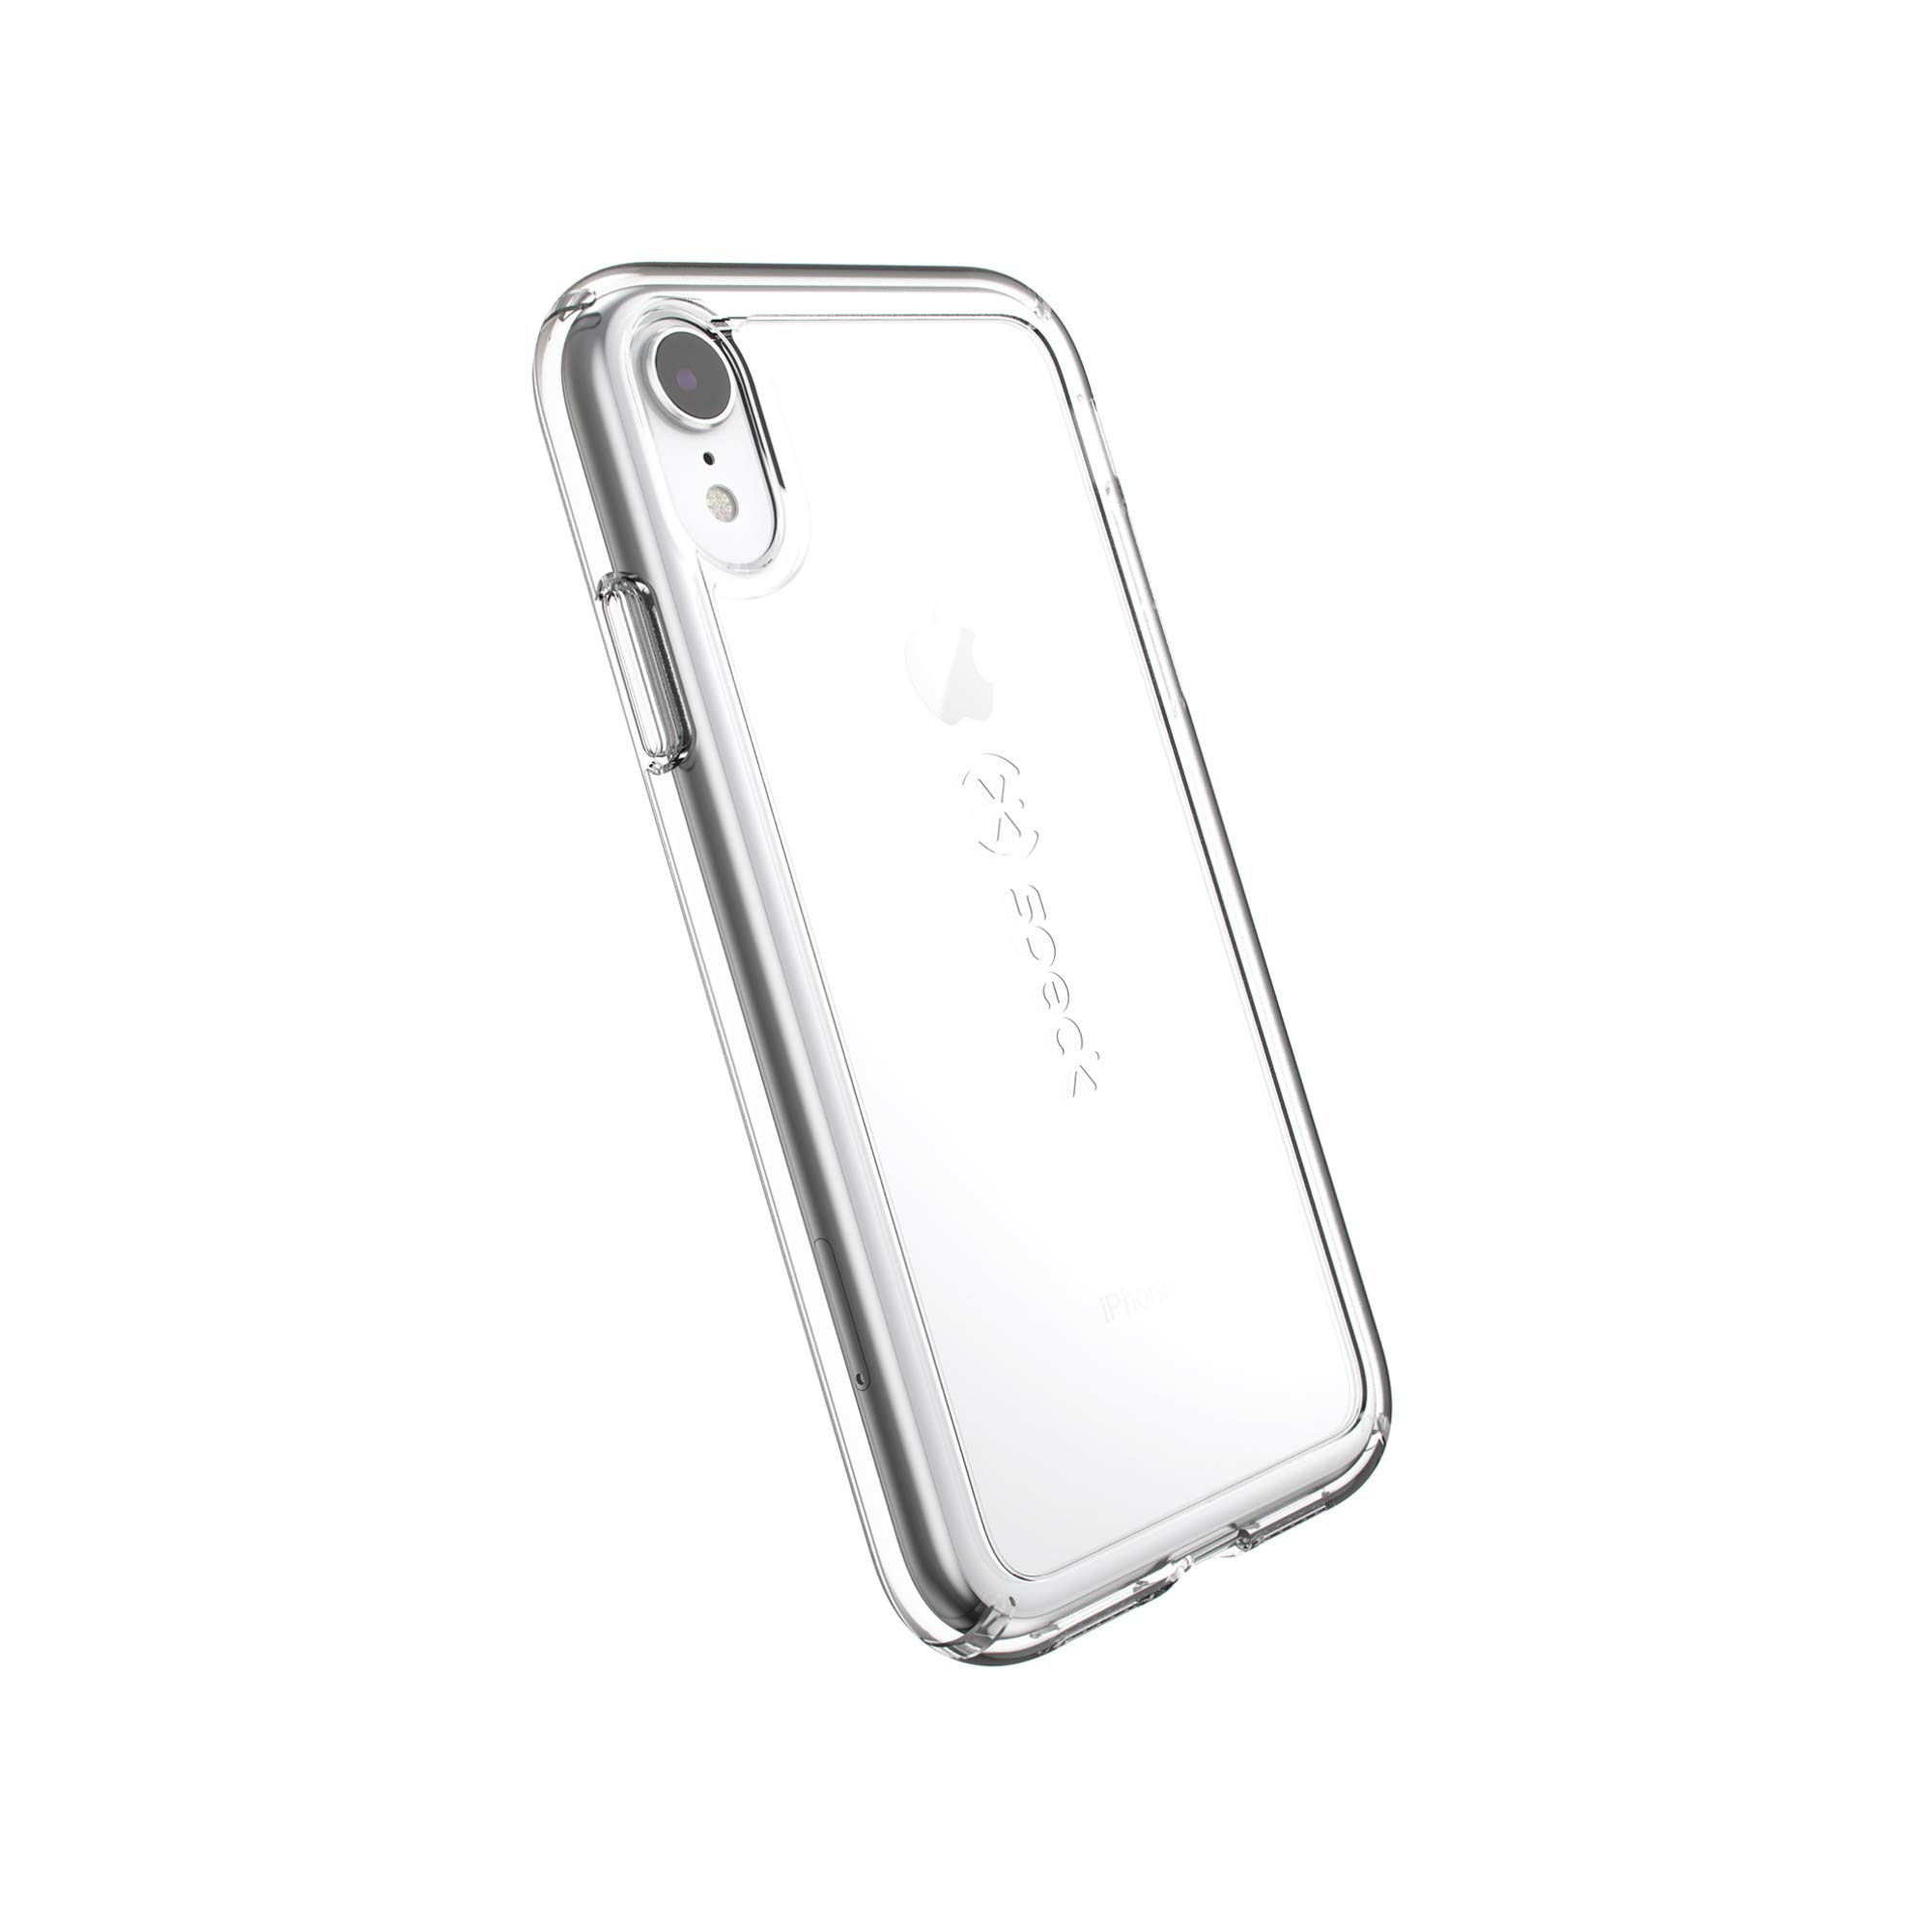 Speck Products GemShell iPhone XR Case, Clear/Clear by Speck